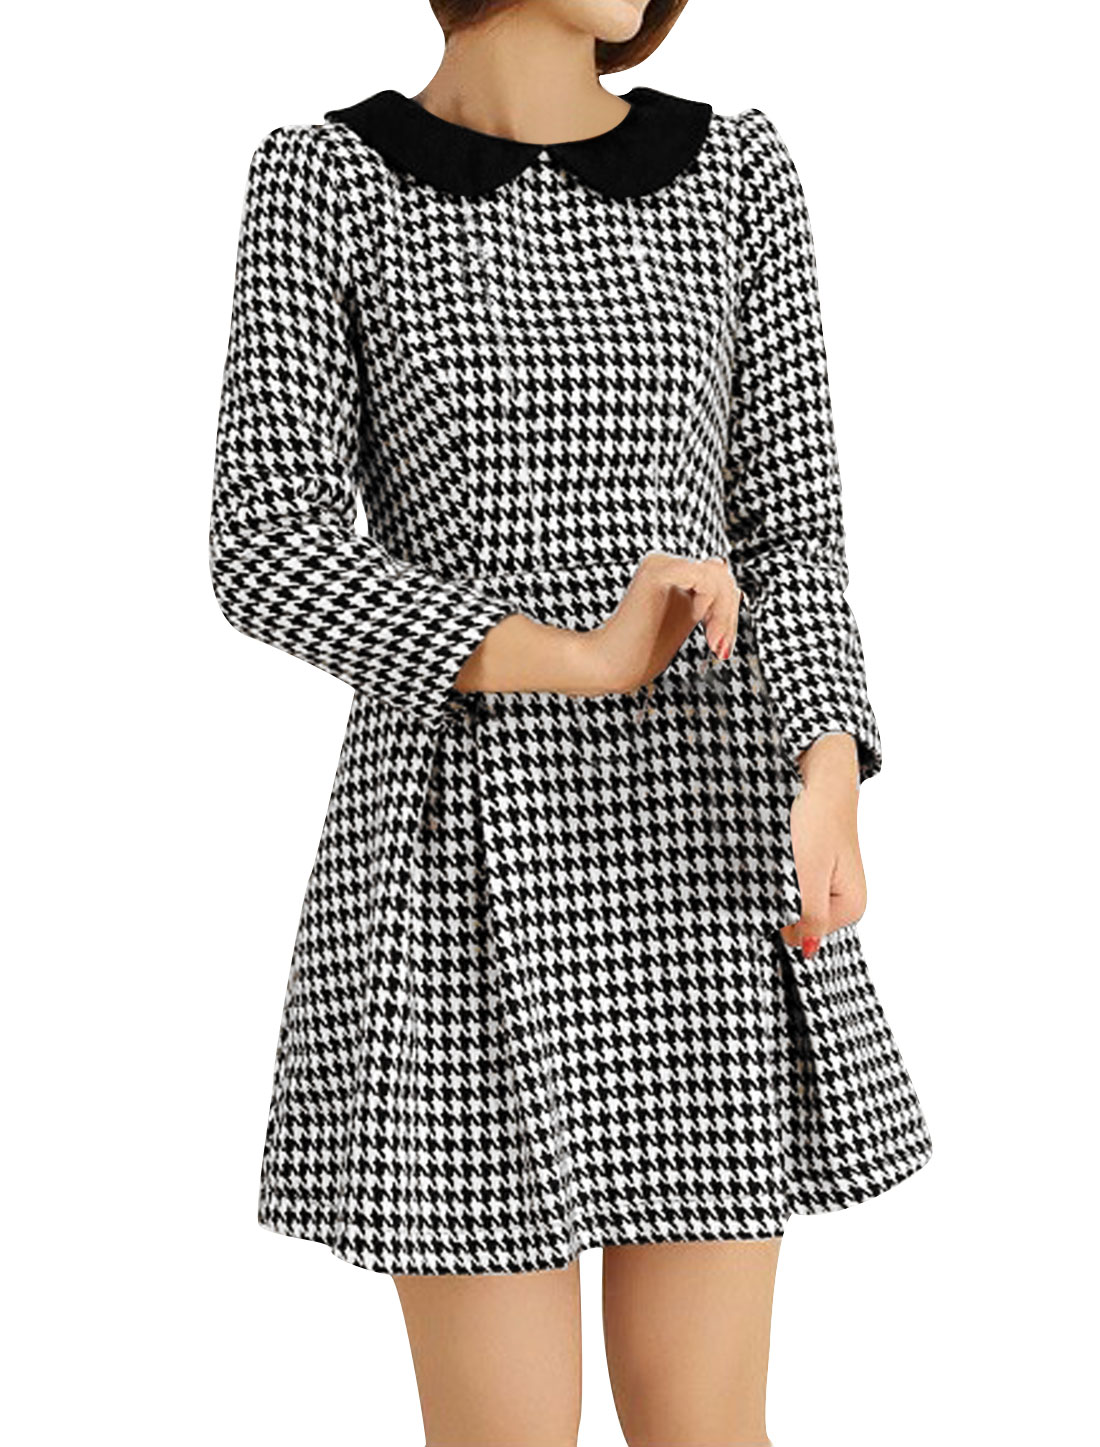 Black White Ruffled Shouder Houndstooth Pattern Dress Women XS